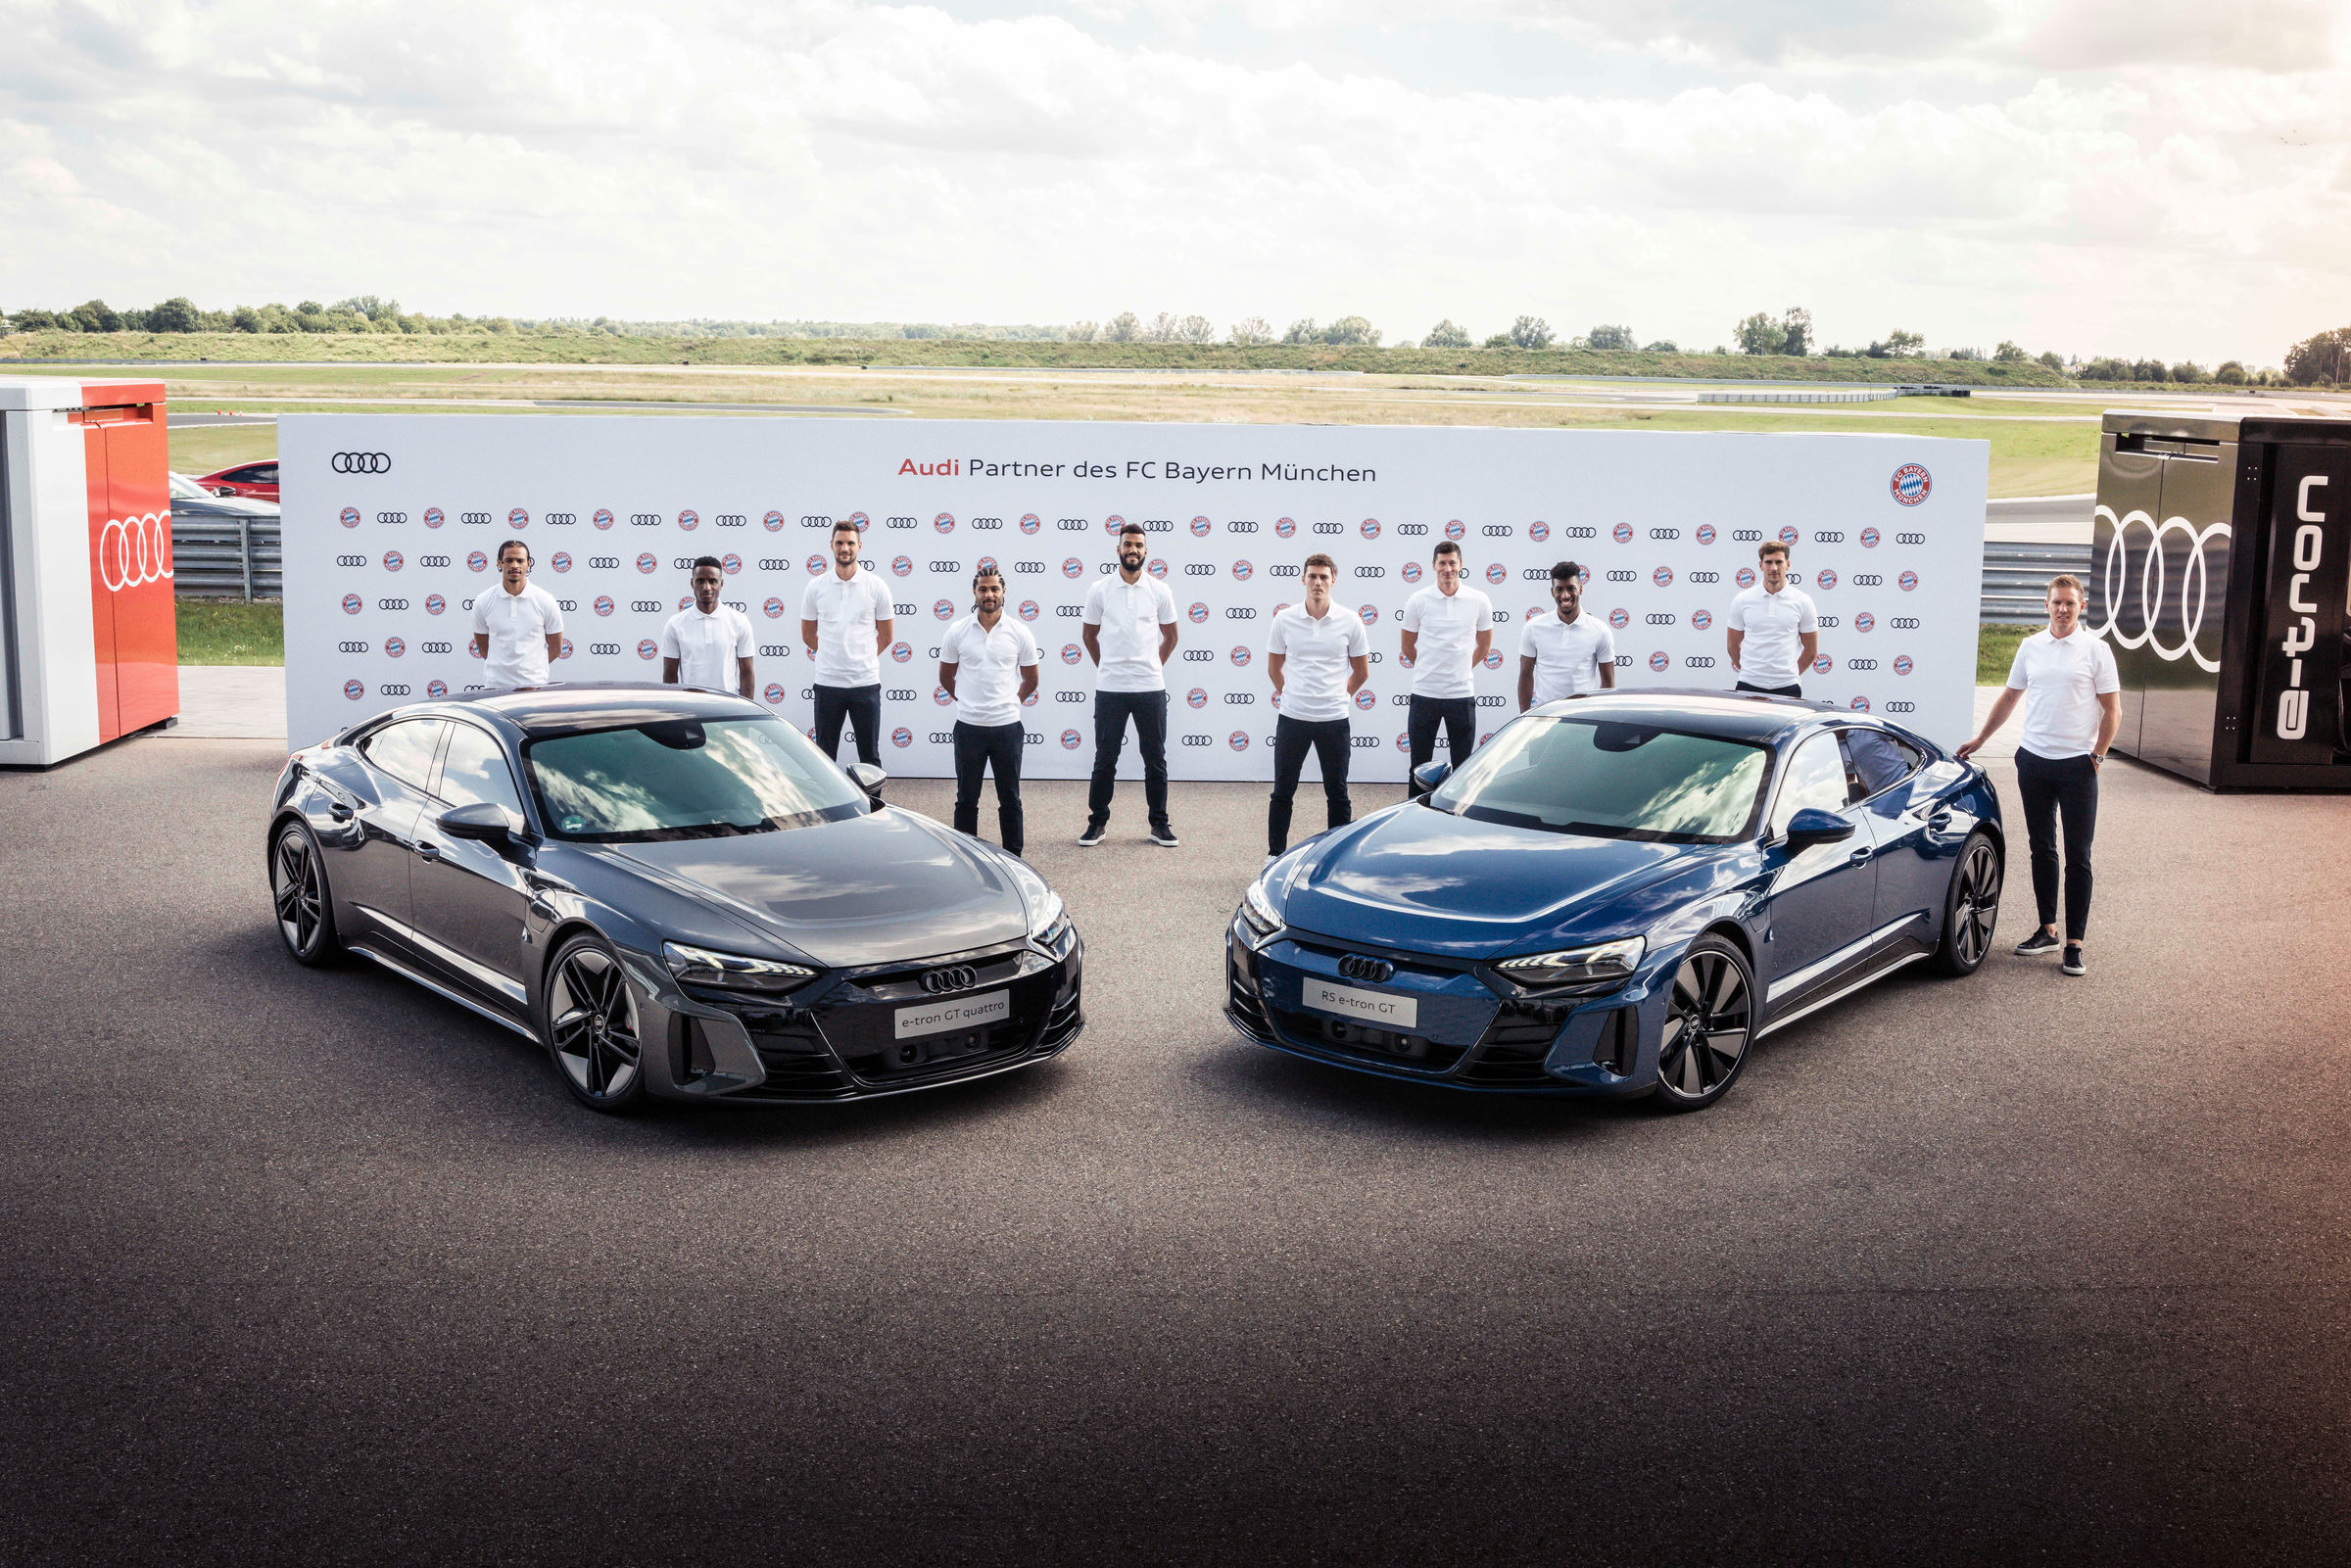 Electrification 2.0: pros from FC Bayern receive Audi e-tron GT - Image 8